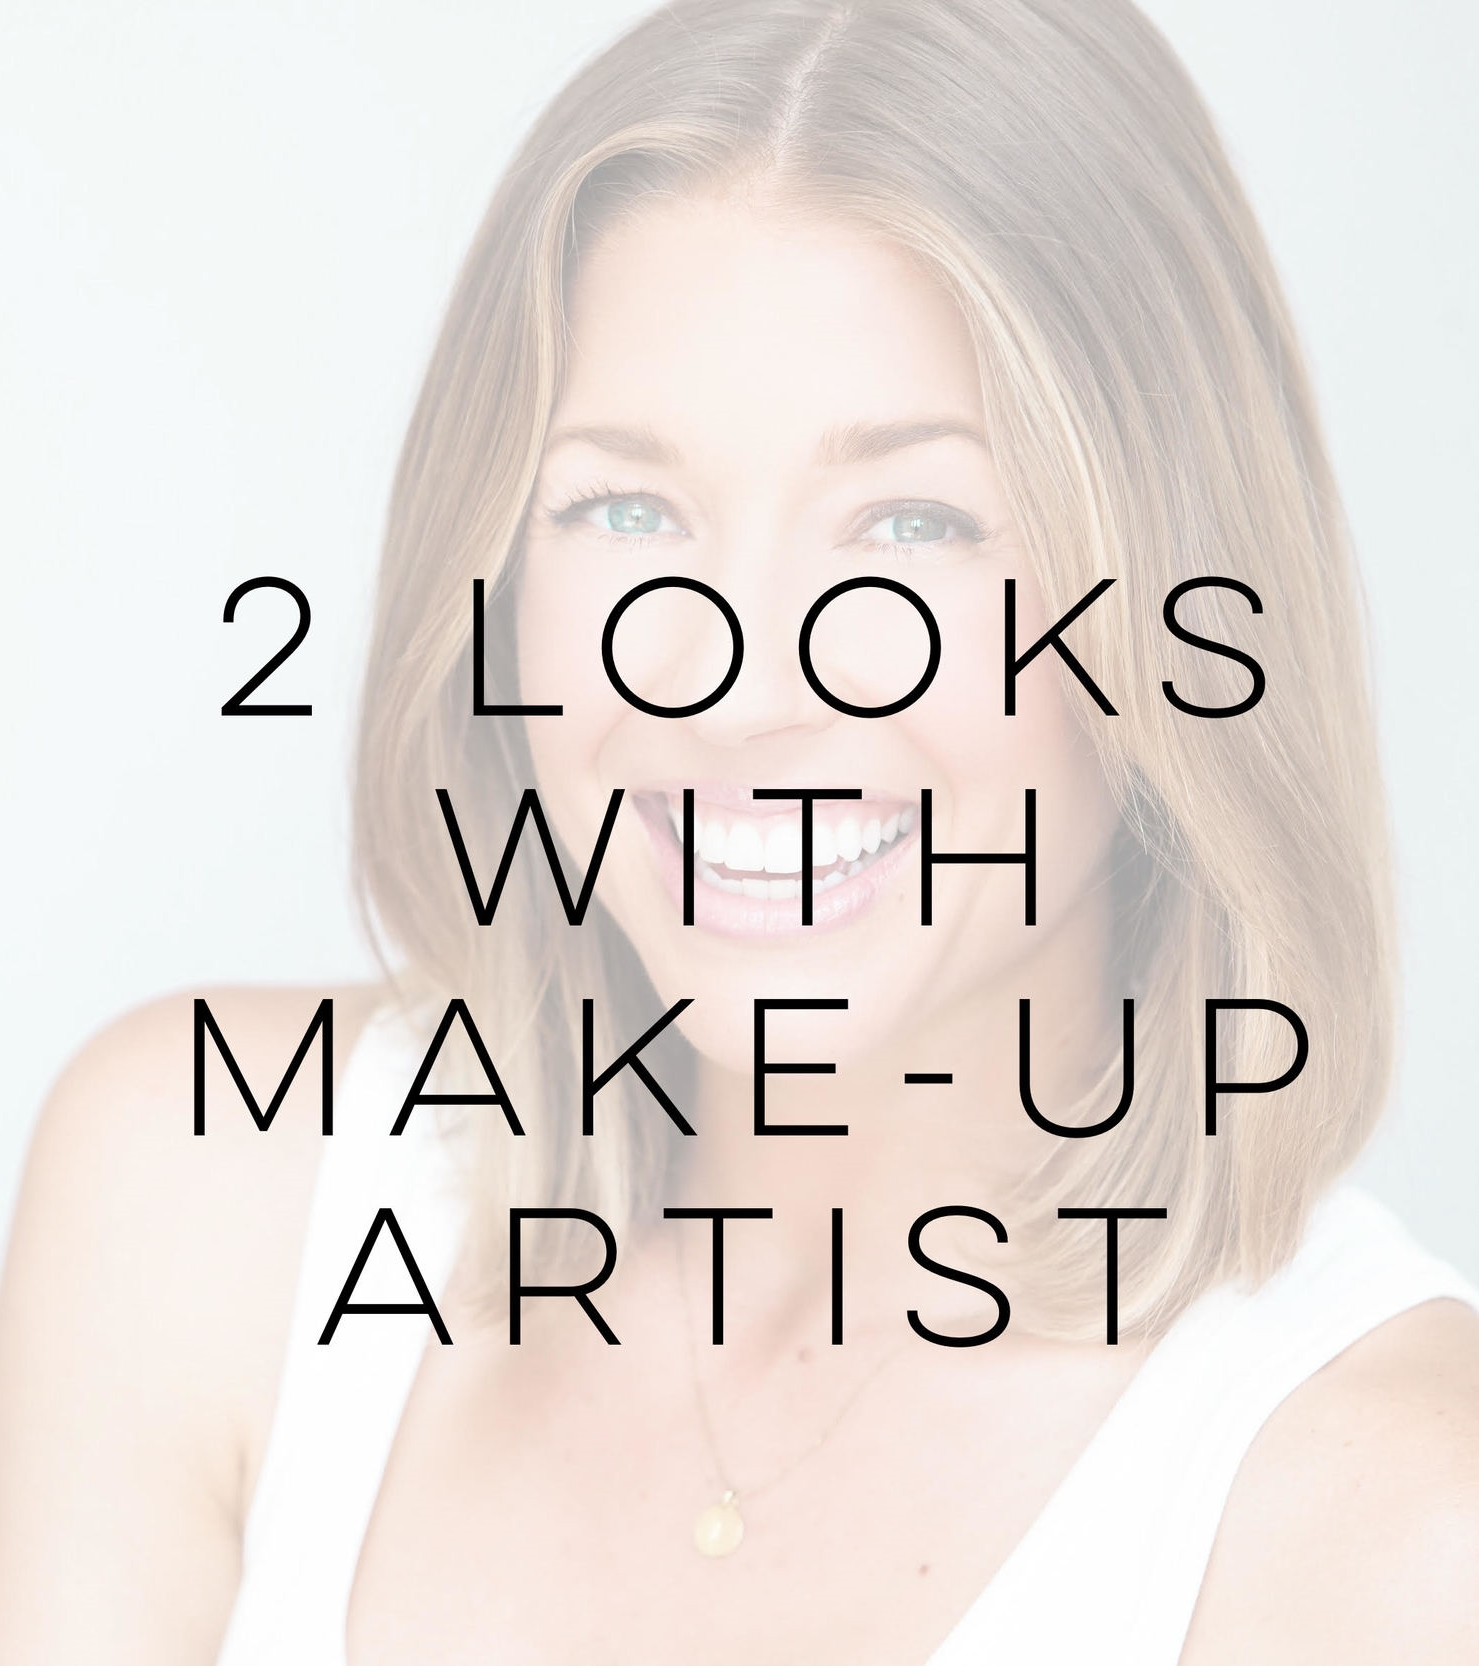 2 Looks WITH make up Artist $200